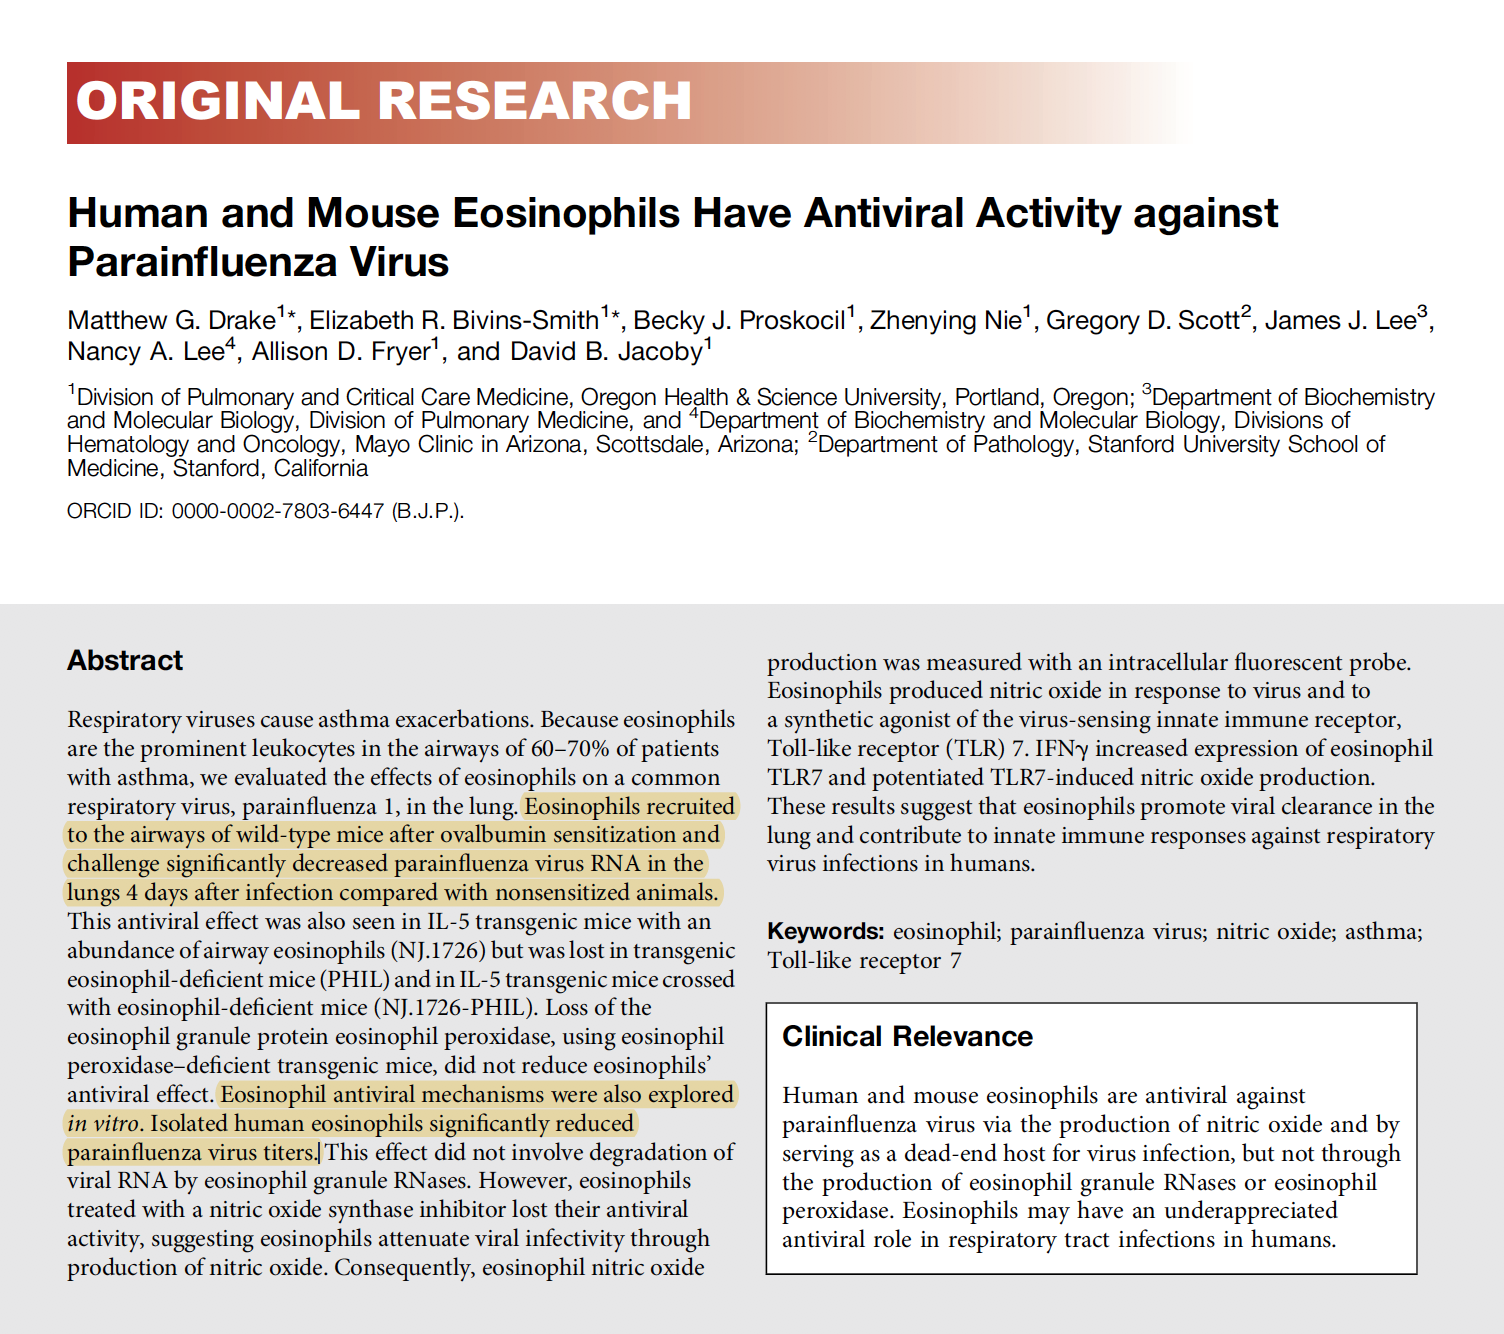 Human and Mouse Eosinophils Have Antiviral Activity against Parainfluenza Virus